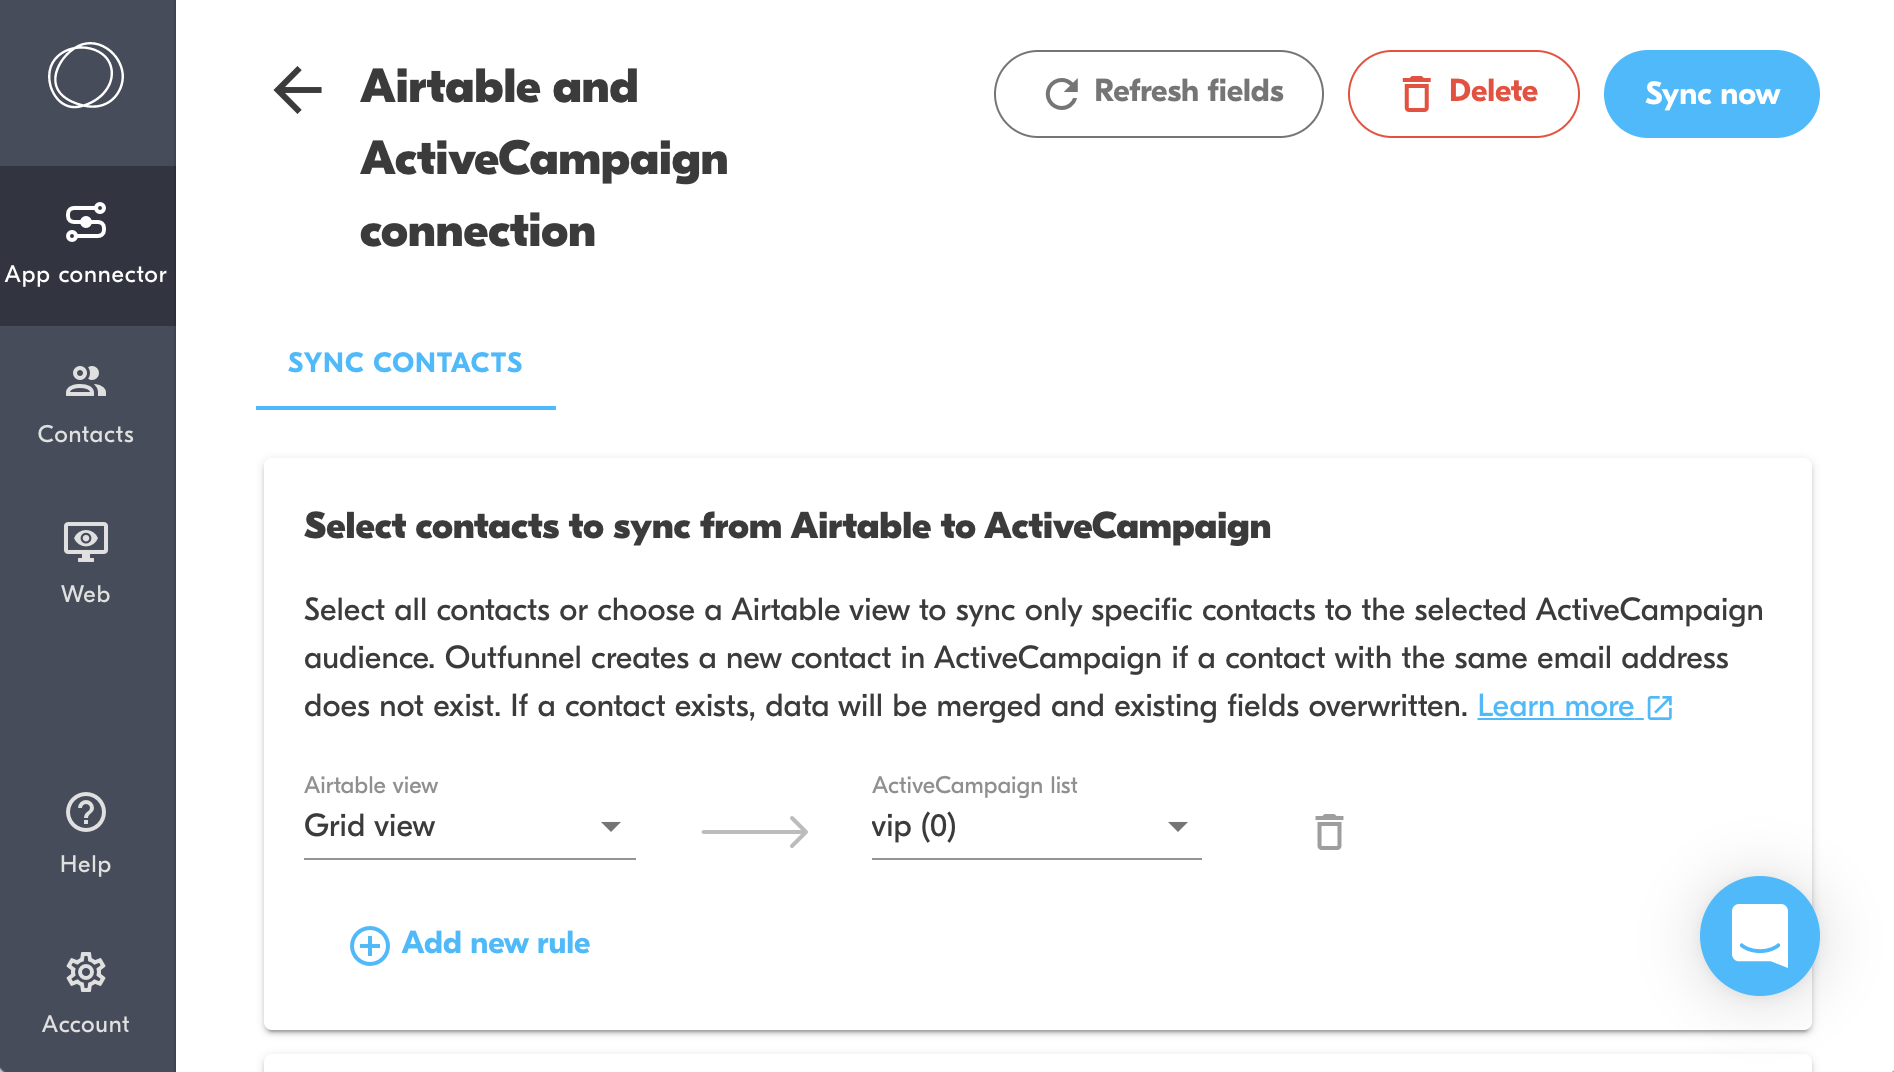 airtable and activecampaign contact sync